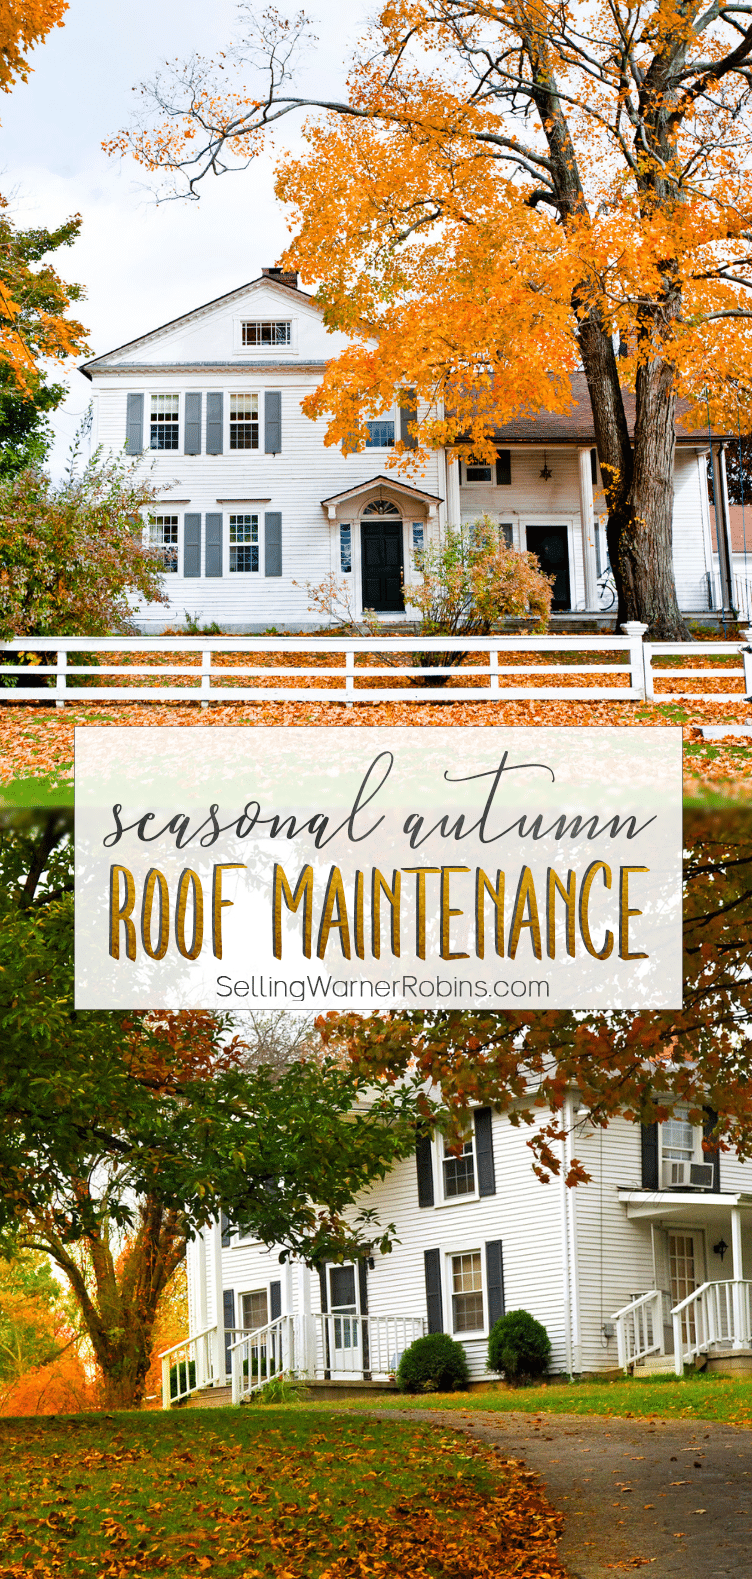 Roof Maintenance for Autumn